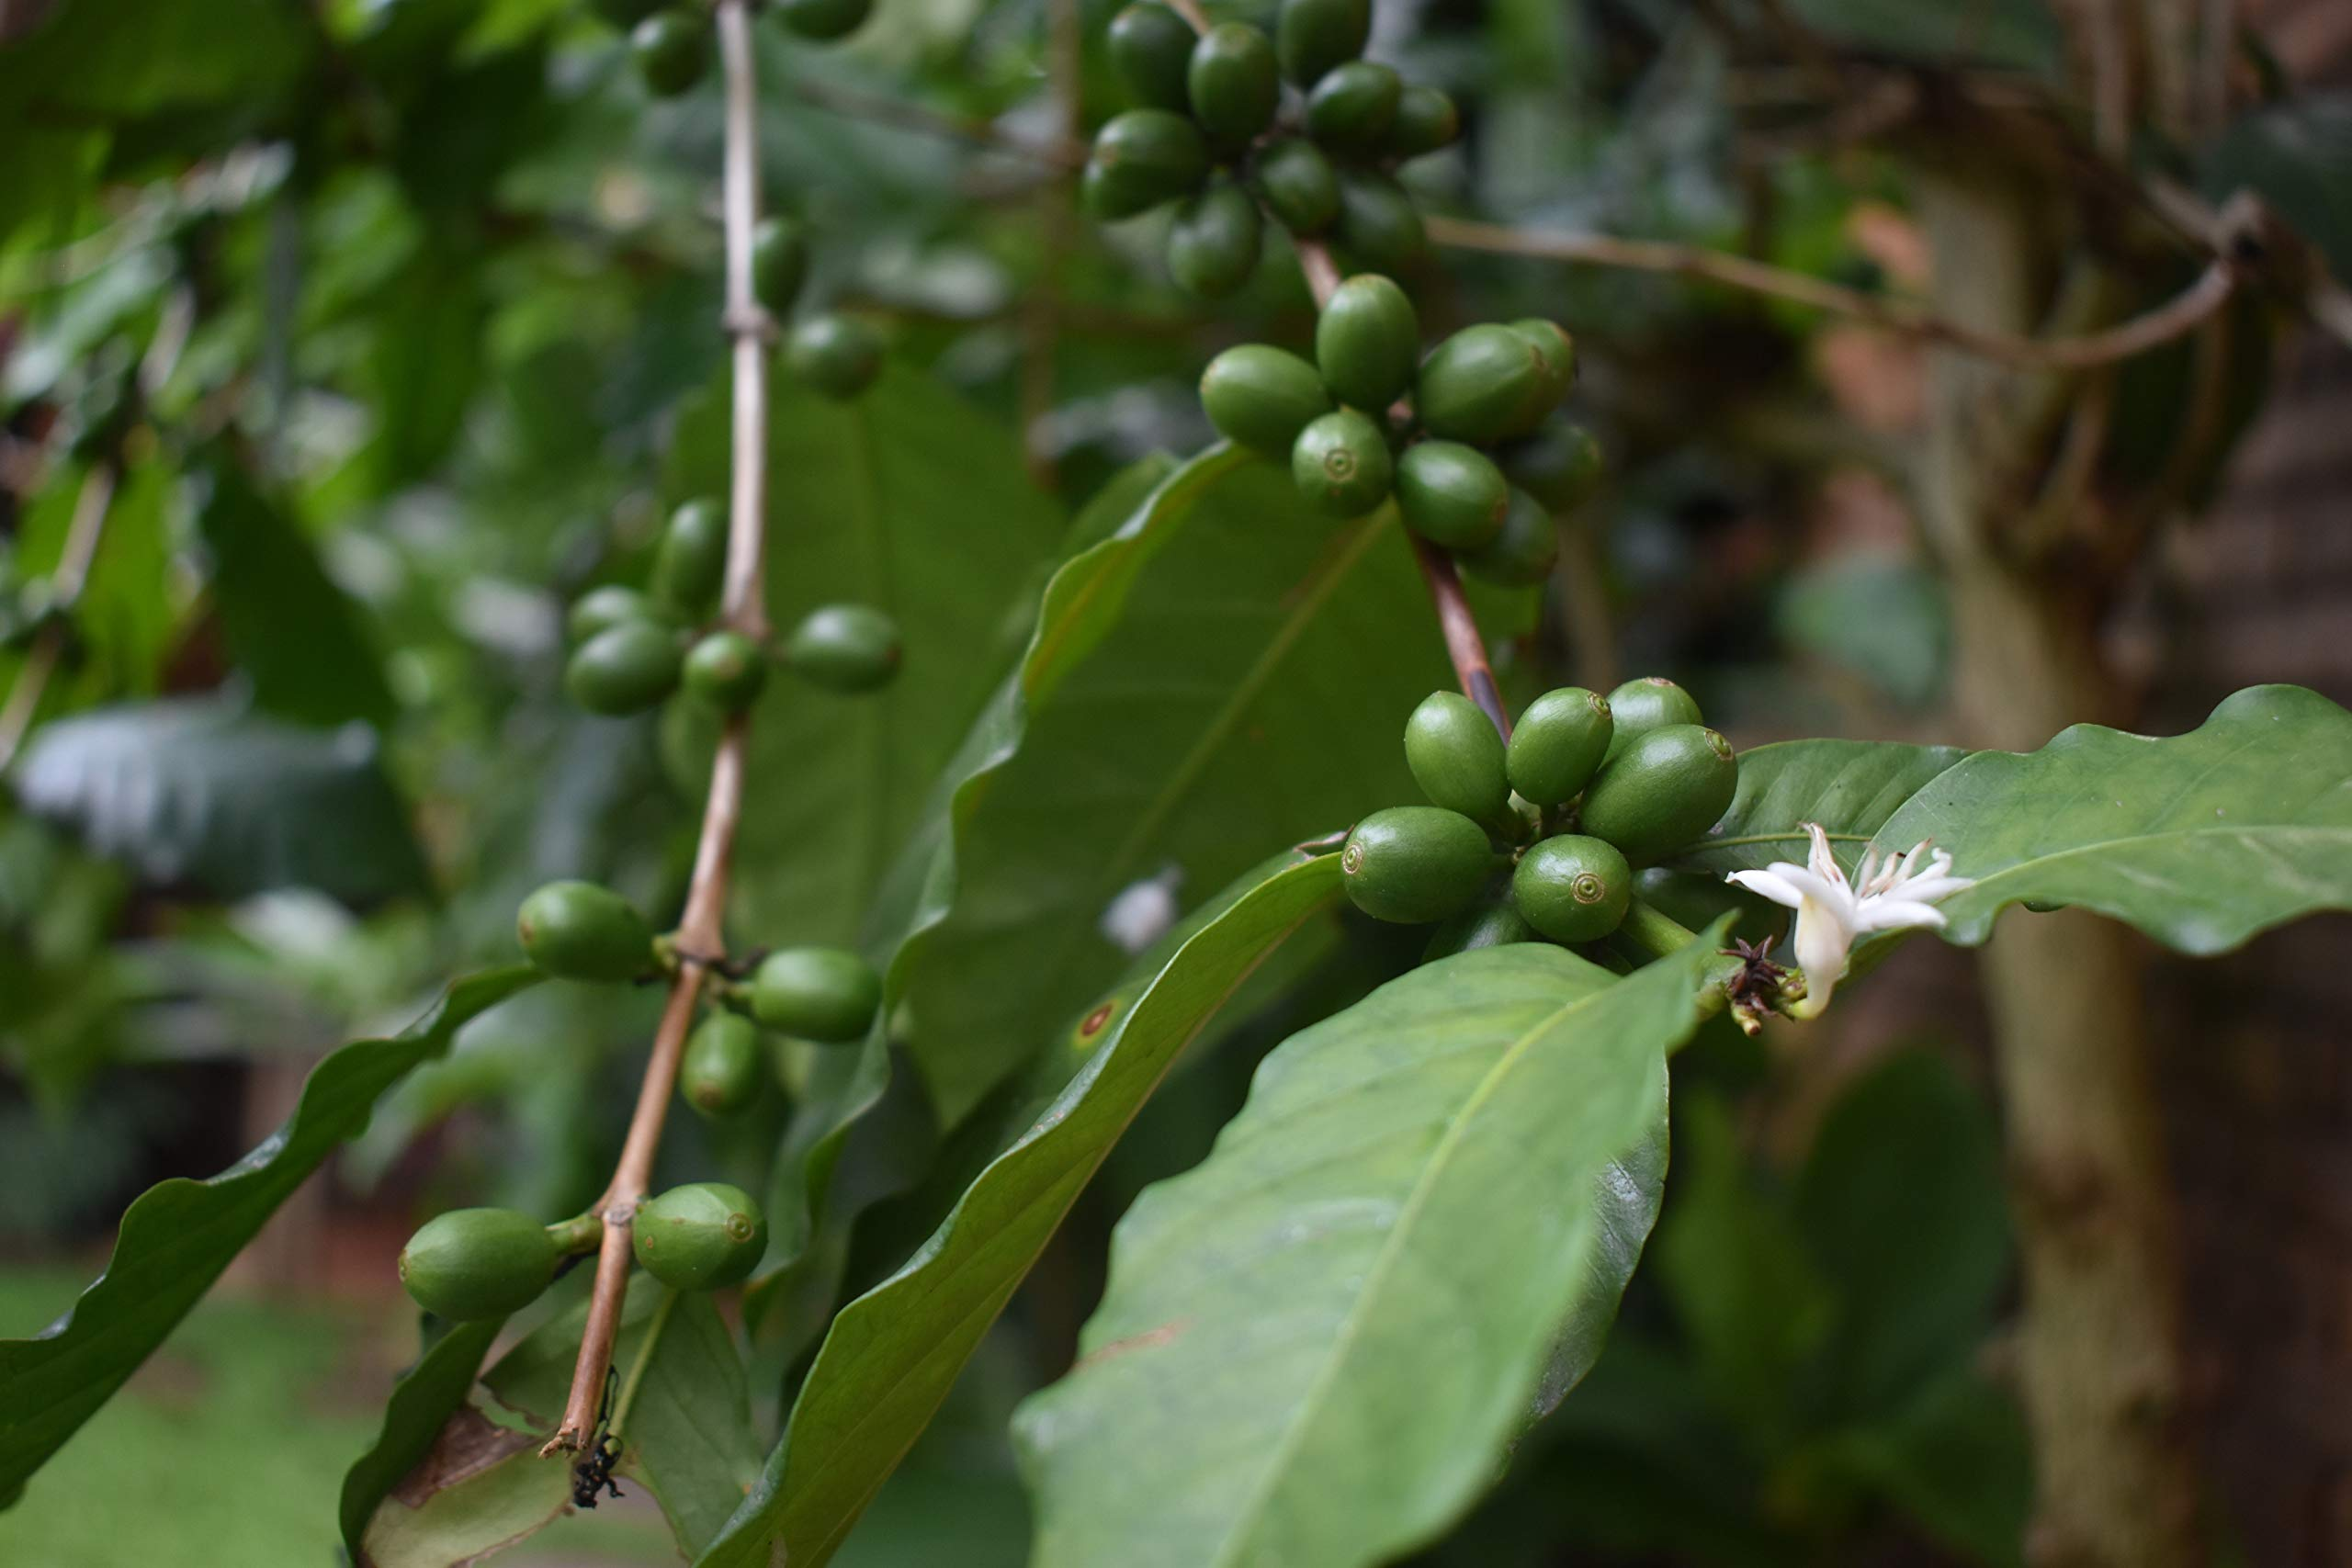 22 lbs BRAZIL SUL MINAS NATURAL PROCESS SPECIALTY AAA GREEN COFFEE by Invalsa Coffee (Image #7)